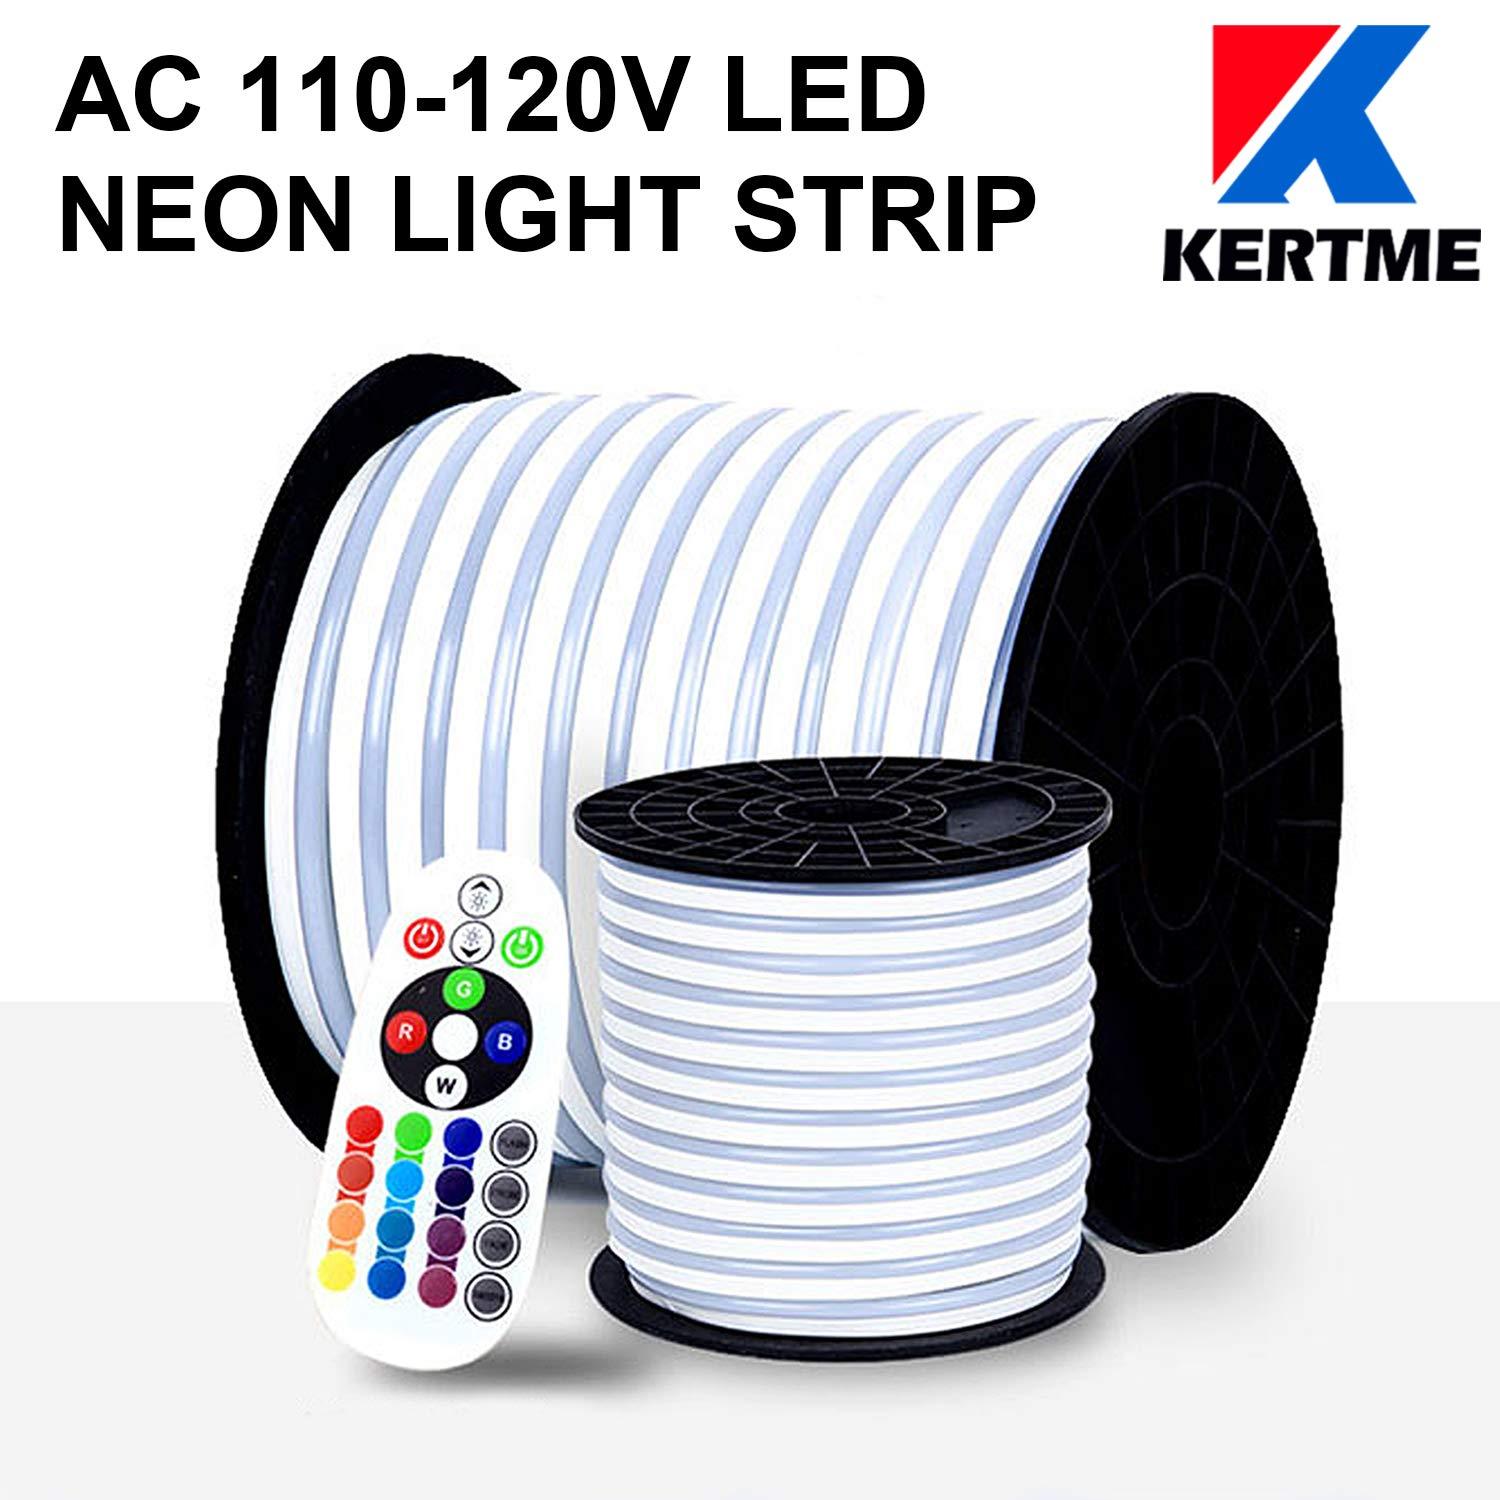 KERTME Neon Led Type AC 110-120V LED NEON Light Strip, Flexible/Waterproof/Dimmable/Multi-Colors/Multi-Modes LED Rope Light + 24 Keys Remote for Home/Garden/Building Decoration (16.4ft/5m, RGB) by KERTME (Image #2)